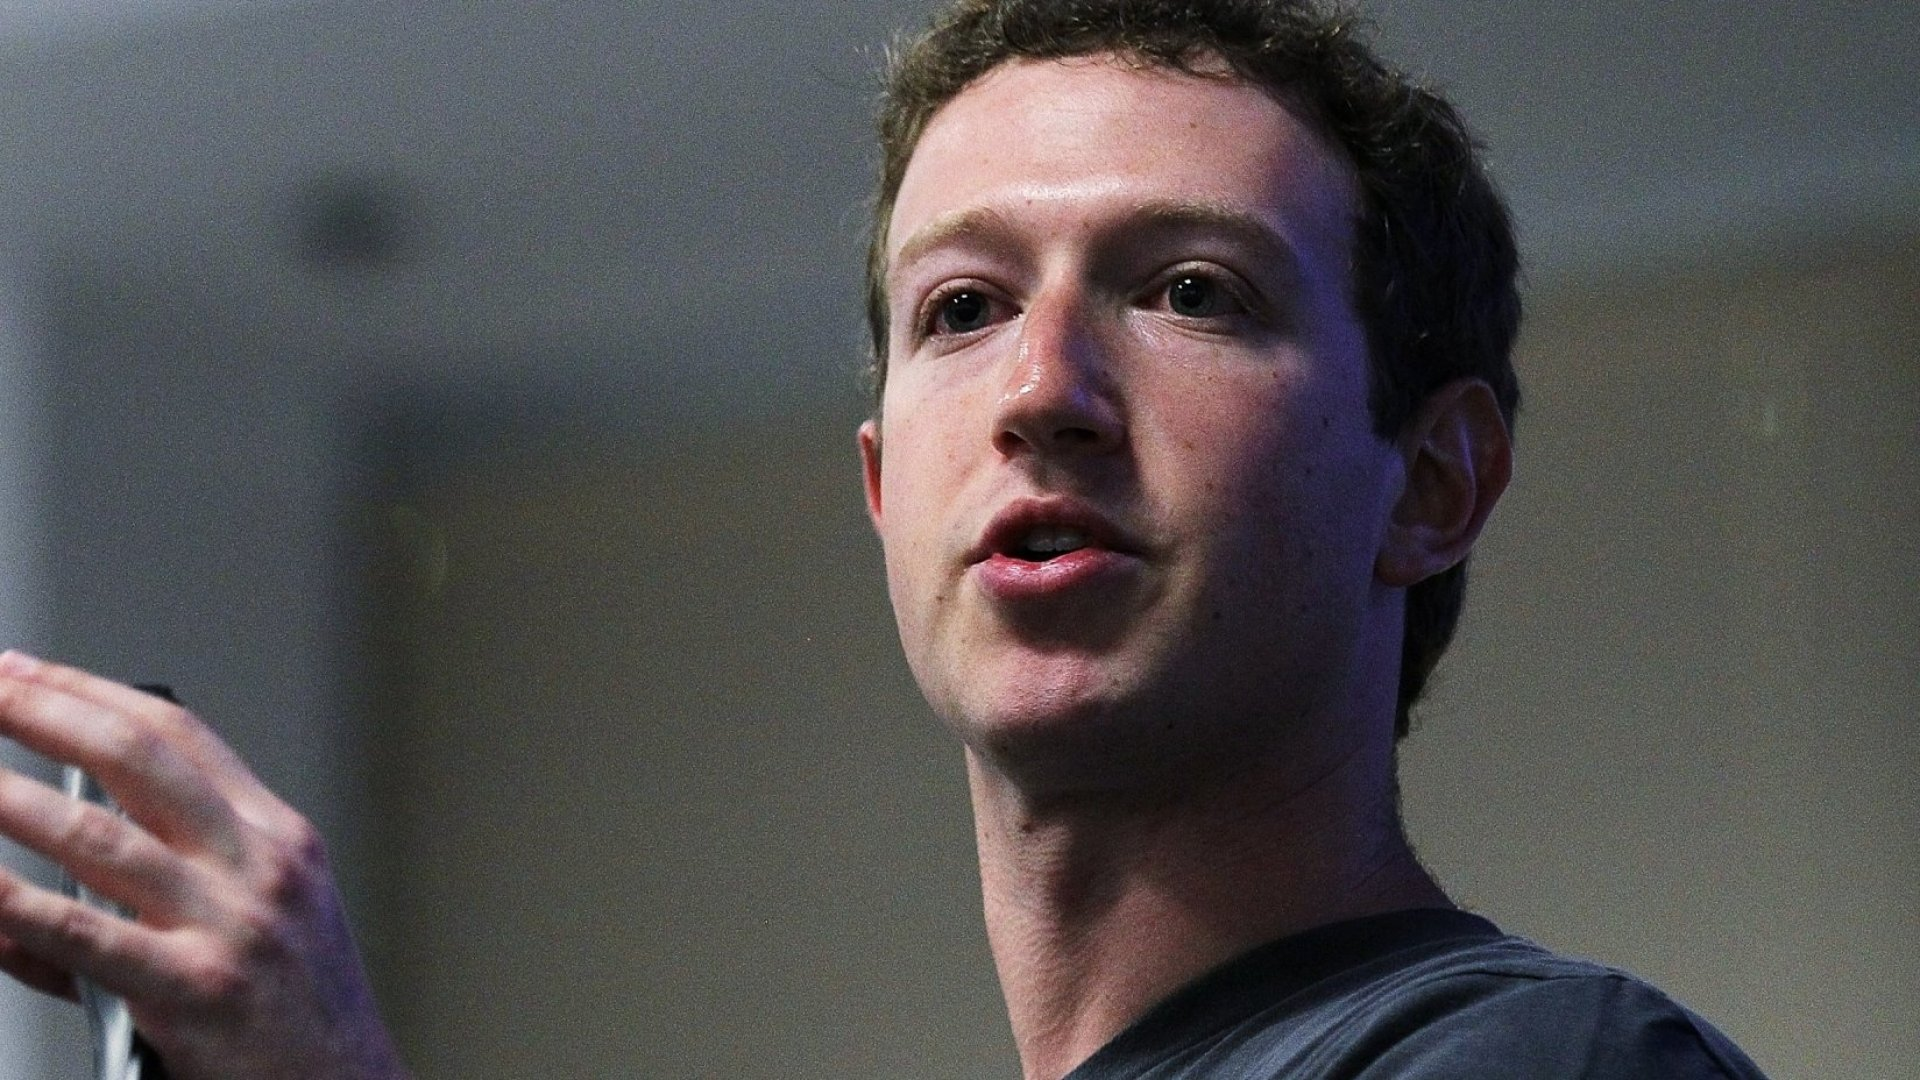 Mark Zuckerberg's Obsession With This Ancient Emperor Helped Lead to Facebook's Success